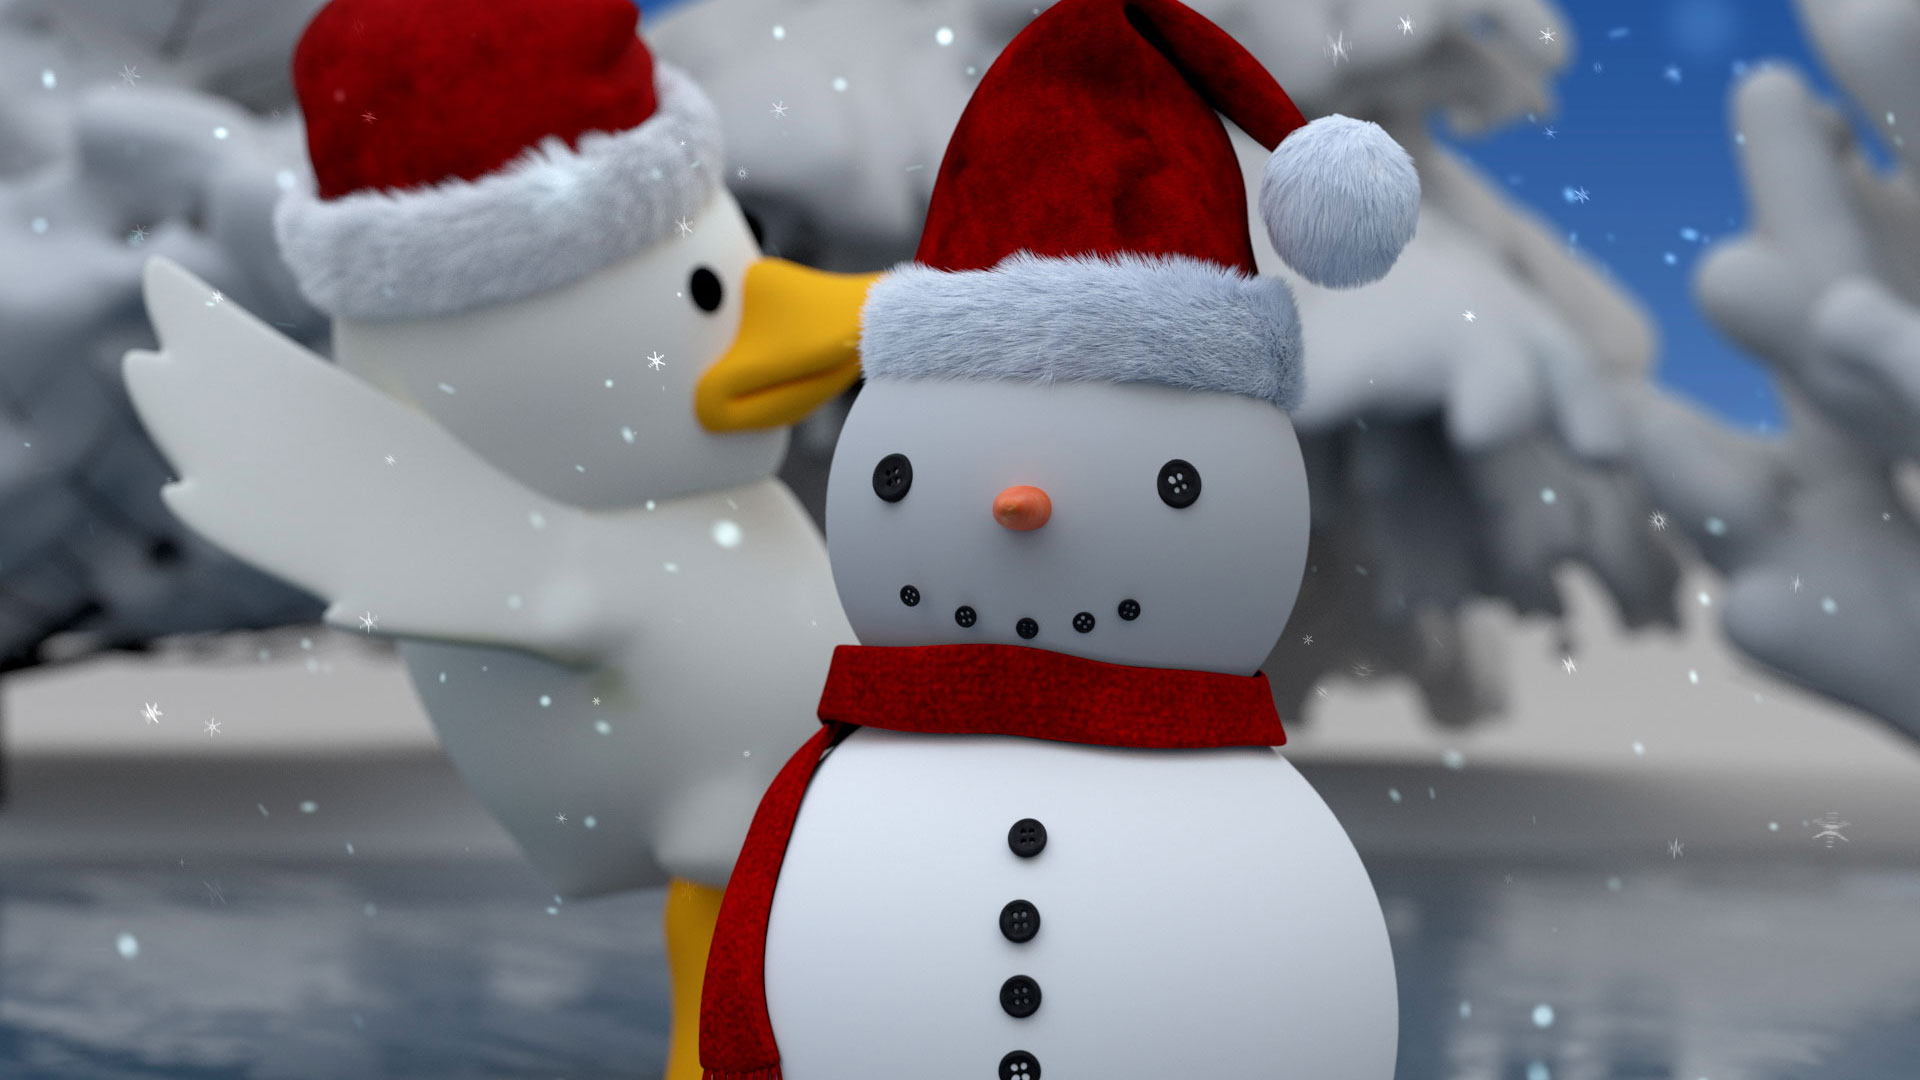 Duck & Snowman's Christmas Adventure